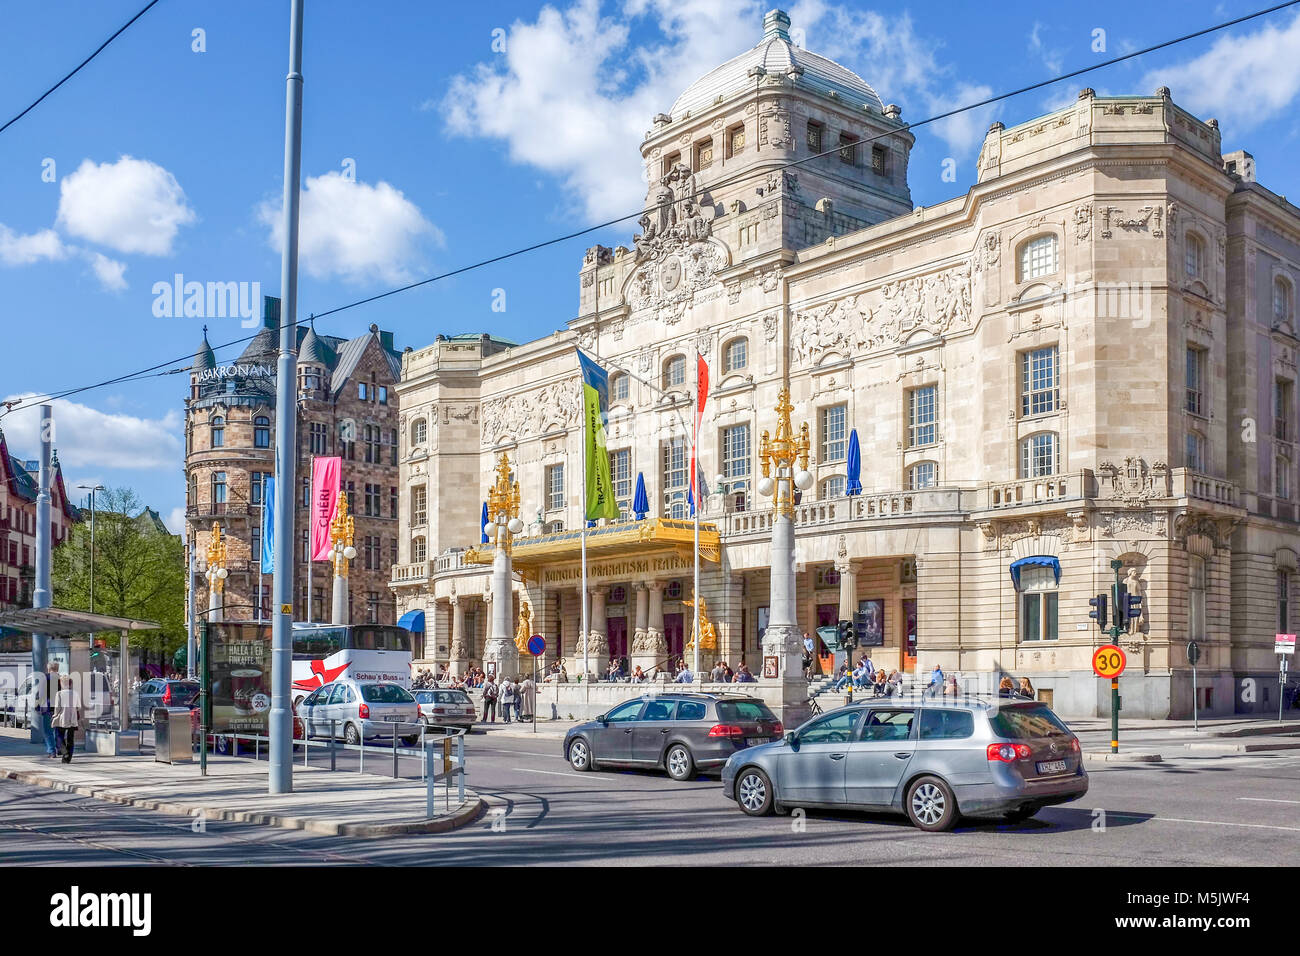 """""""Dramaten"""" the Royal Dramatic theatre at Nybroplan during springtime in Stockhom. Stock Photo"""